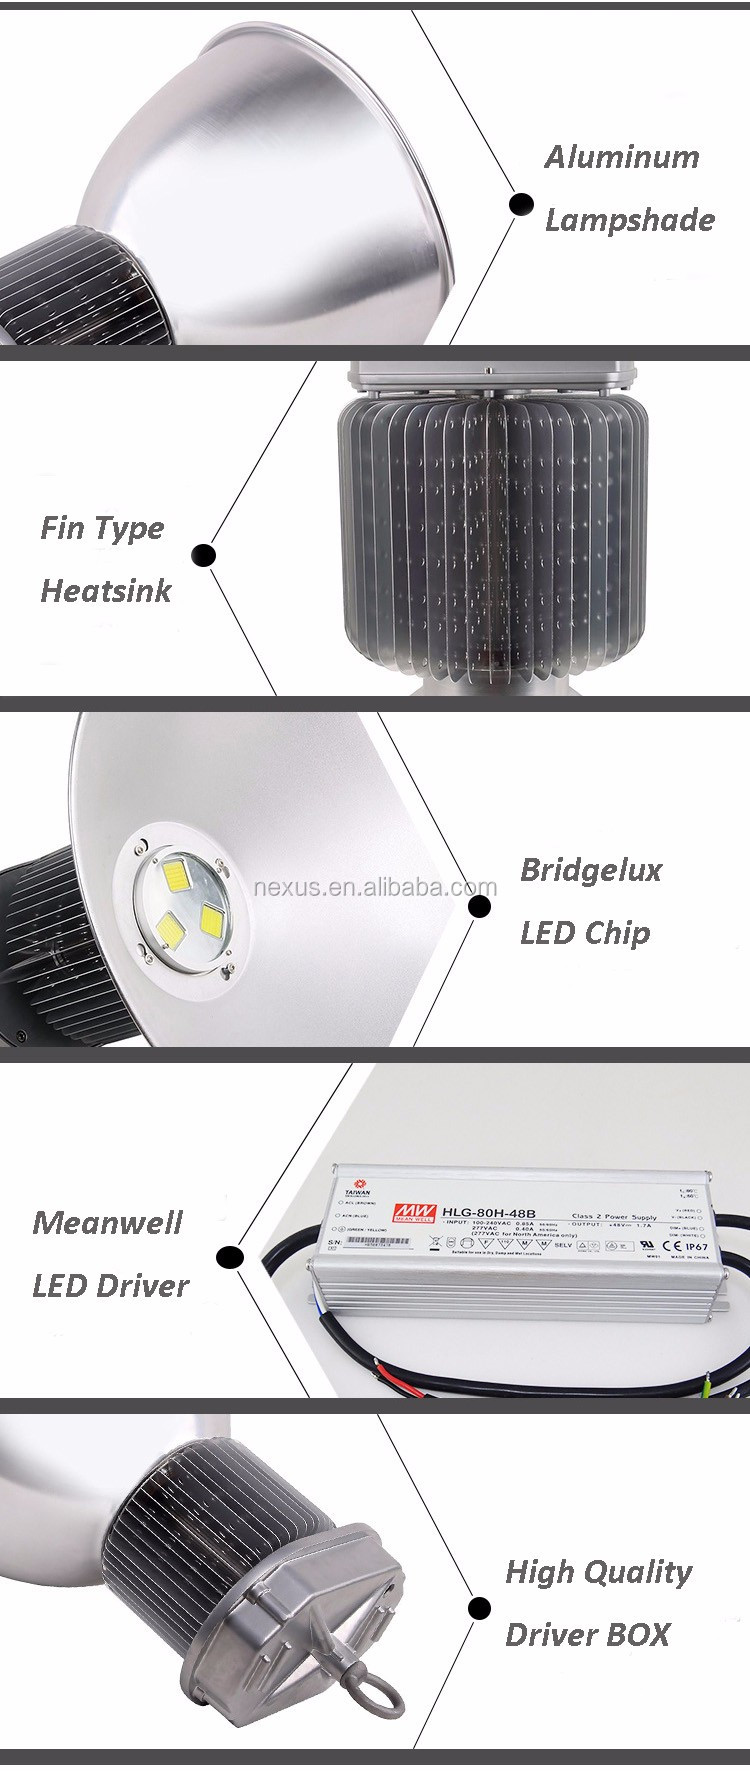 Top Quality High Power Meanwell Bridgelux 400w LED High Bay Light